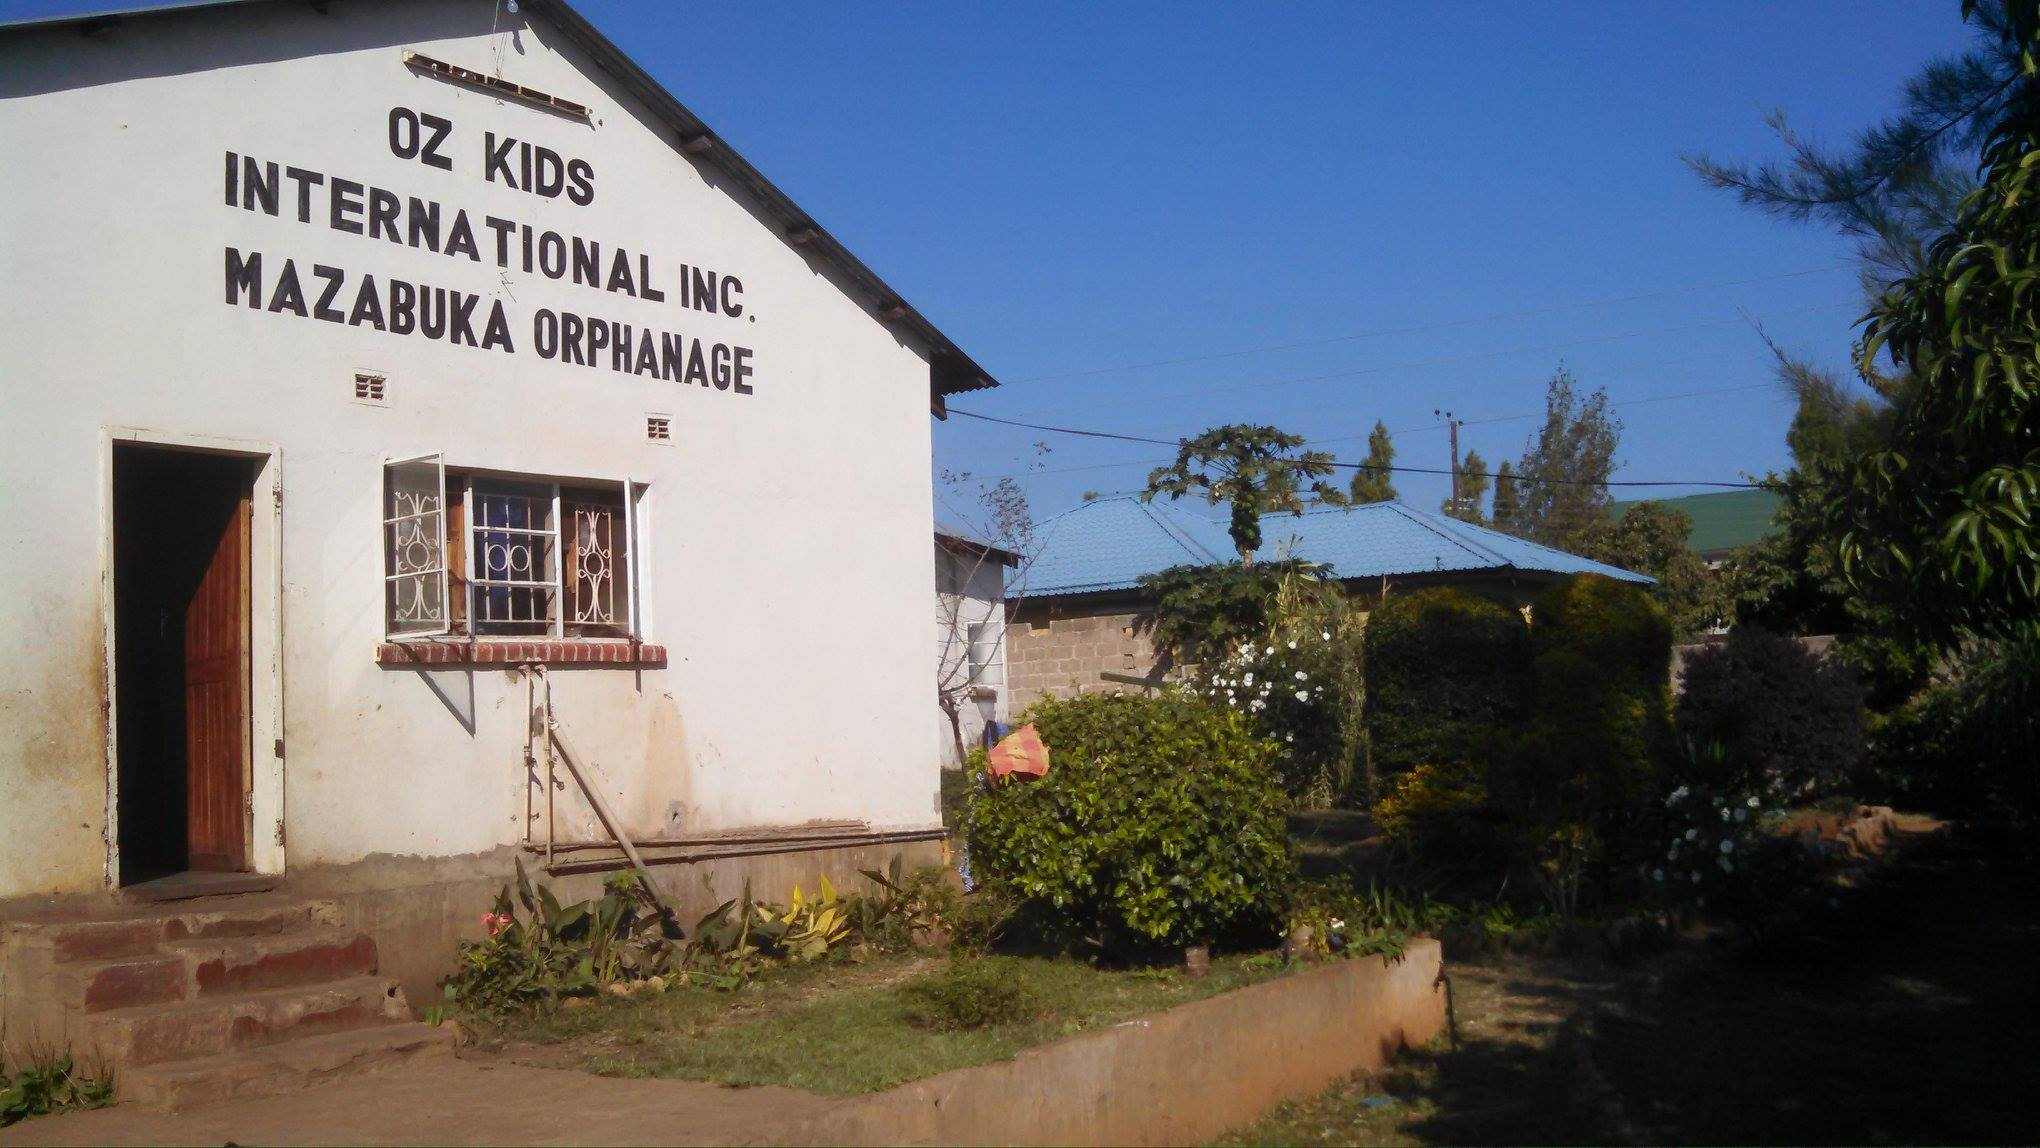 Oz Kids International Orphanage located in Mazabuka, Zambia